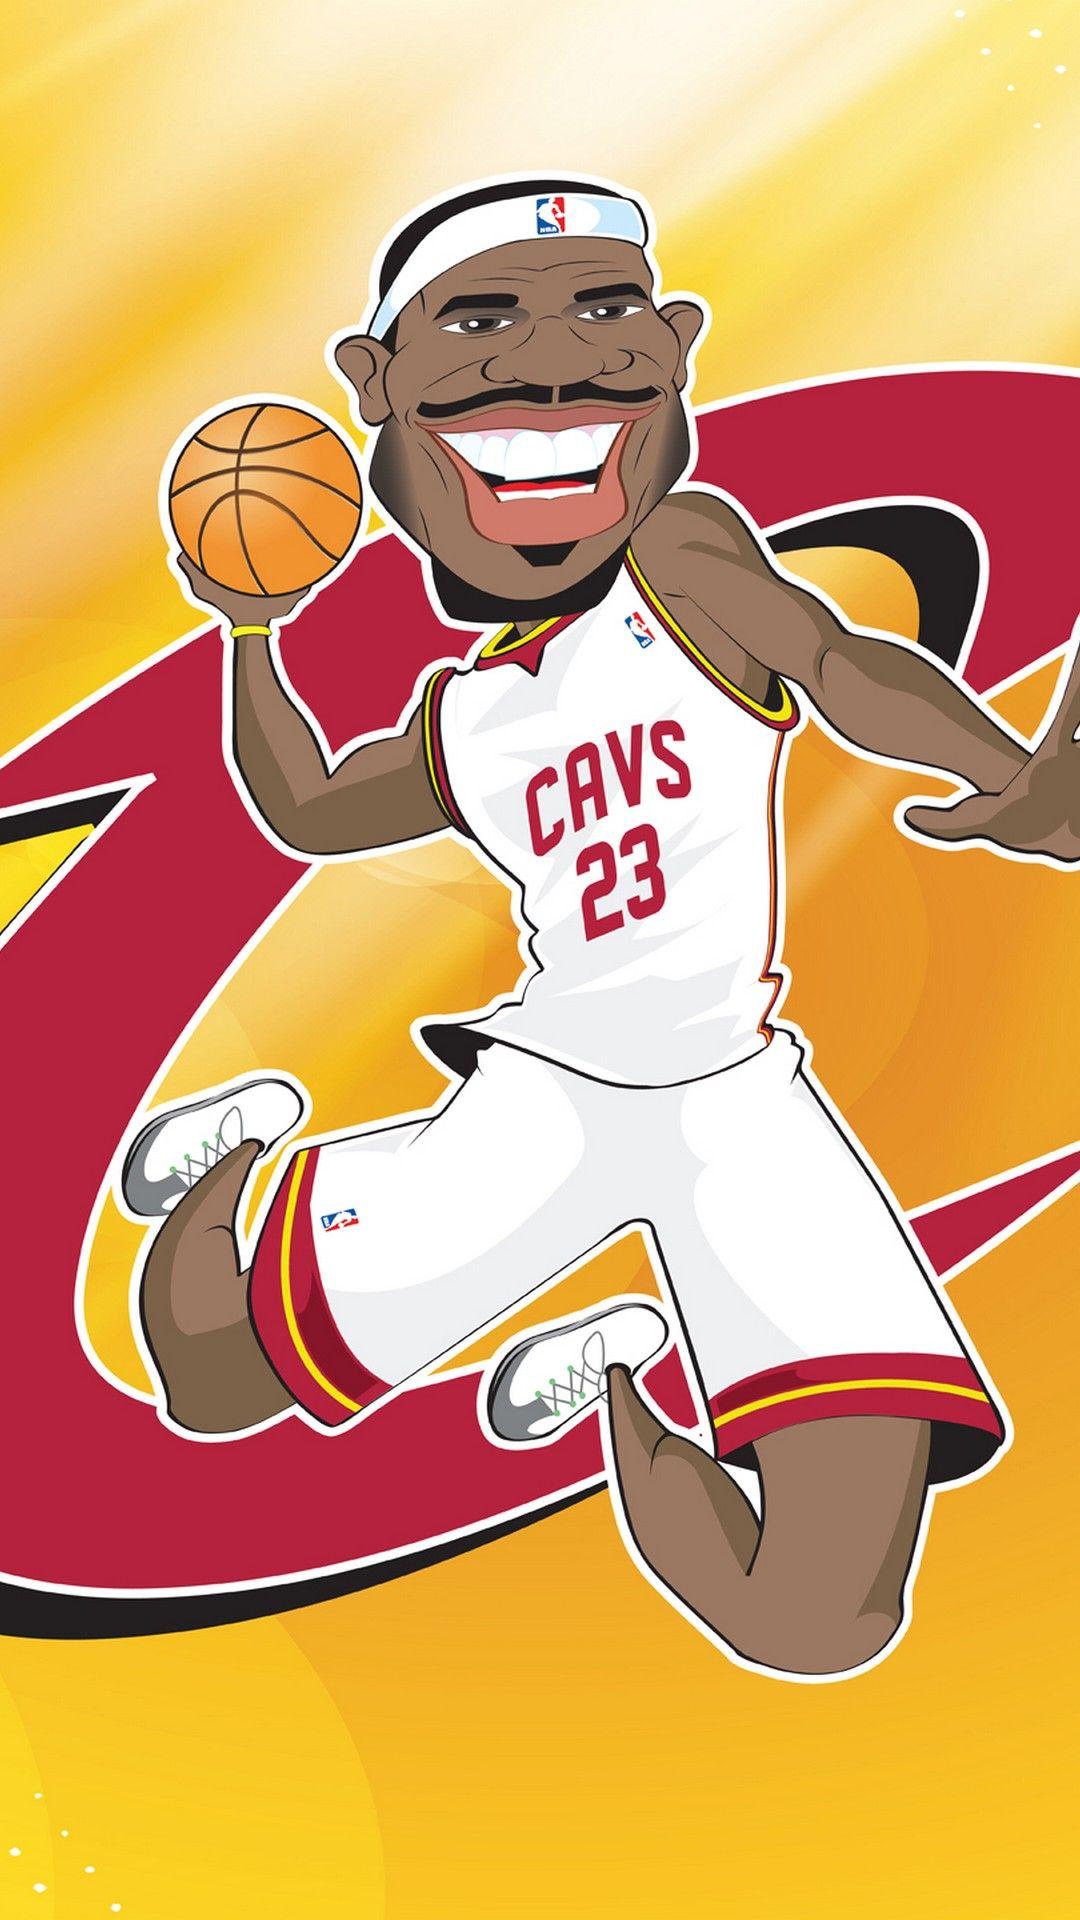 Cleveland Cavaliers Nba Iphone 8 Wallpaper 2021 Basketball Wallpaper Cavaliers Nba Basketball Wallpaper Basketball Drawings